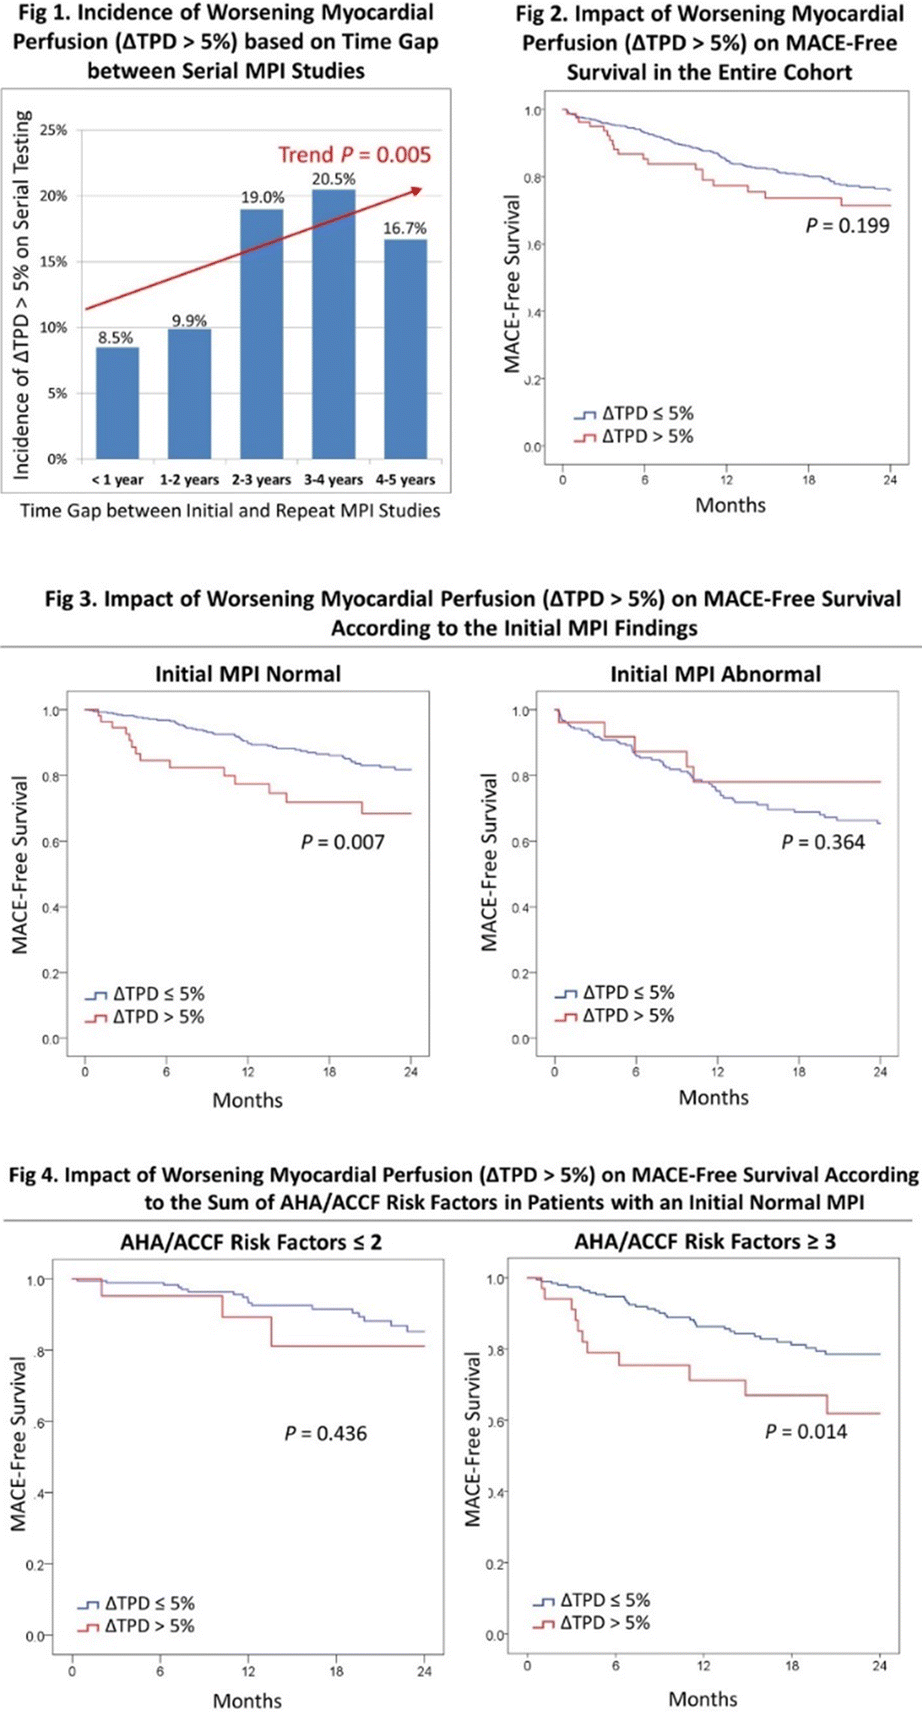 Abstracts Of Original Contributions Asnc2018 The 23rd Annual S Havana Wiring Diagram 2002 Gmc Van Serial Mpi Testing In Kt Candidates Seems To Yield Incremental Prognostic Value Only If Patient Is At High Clinical Cardiac Risk 3 Aha Accf